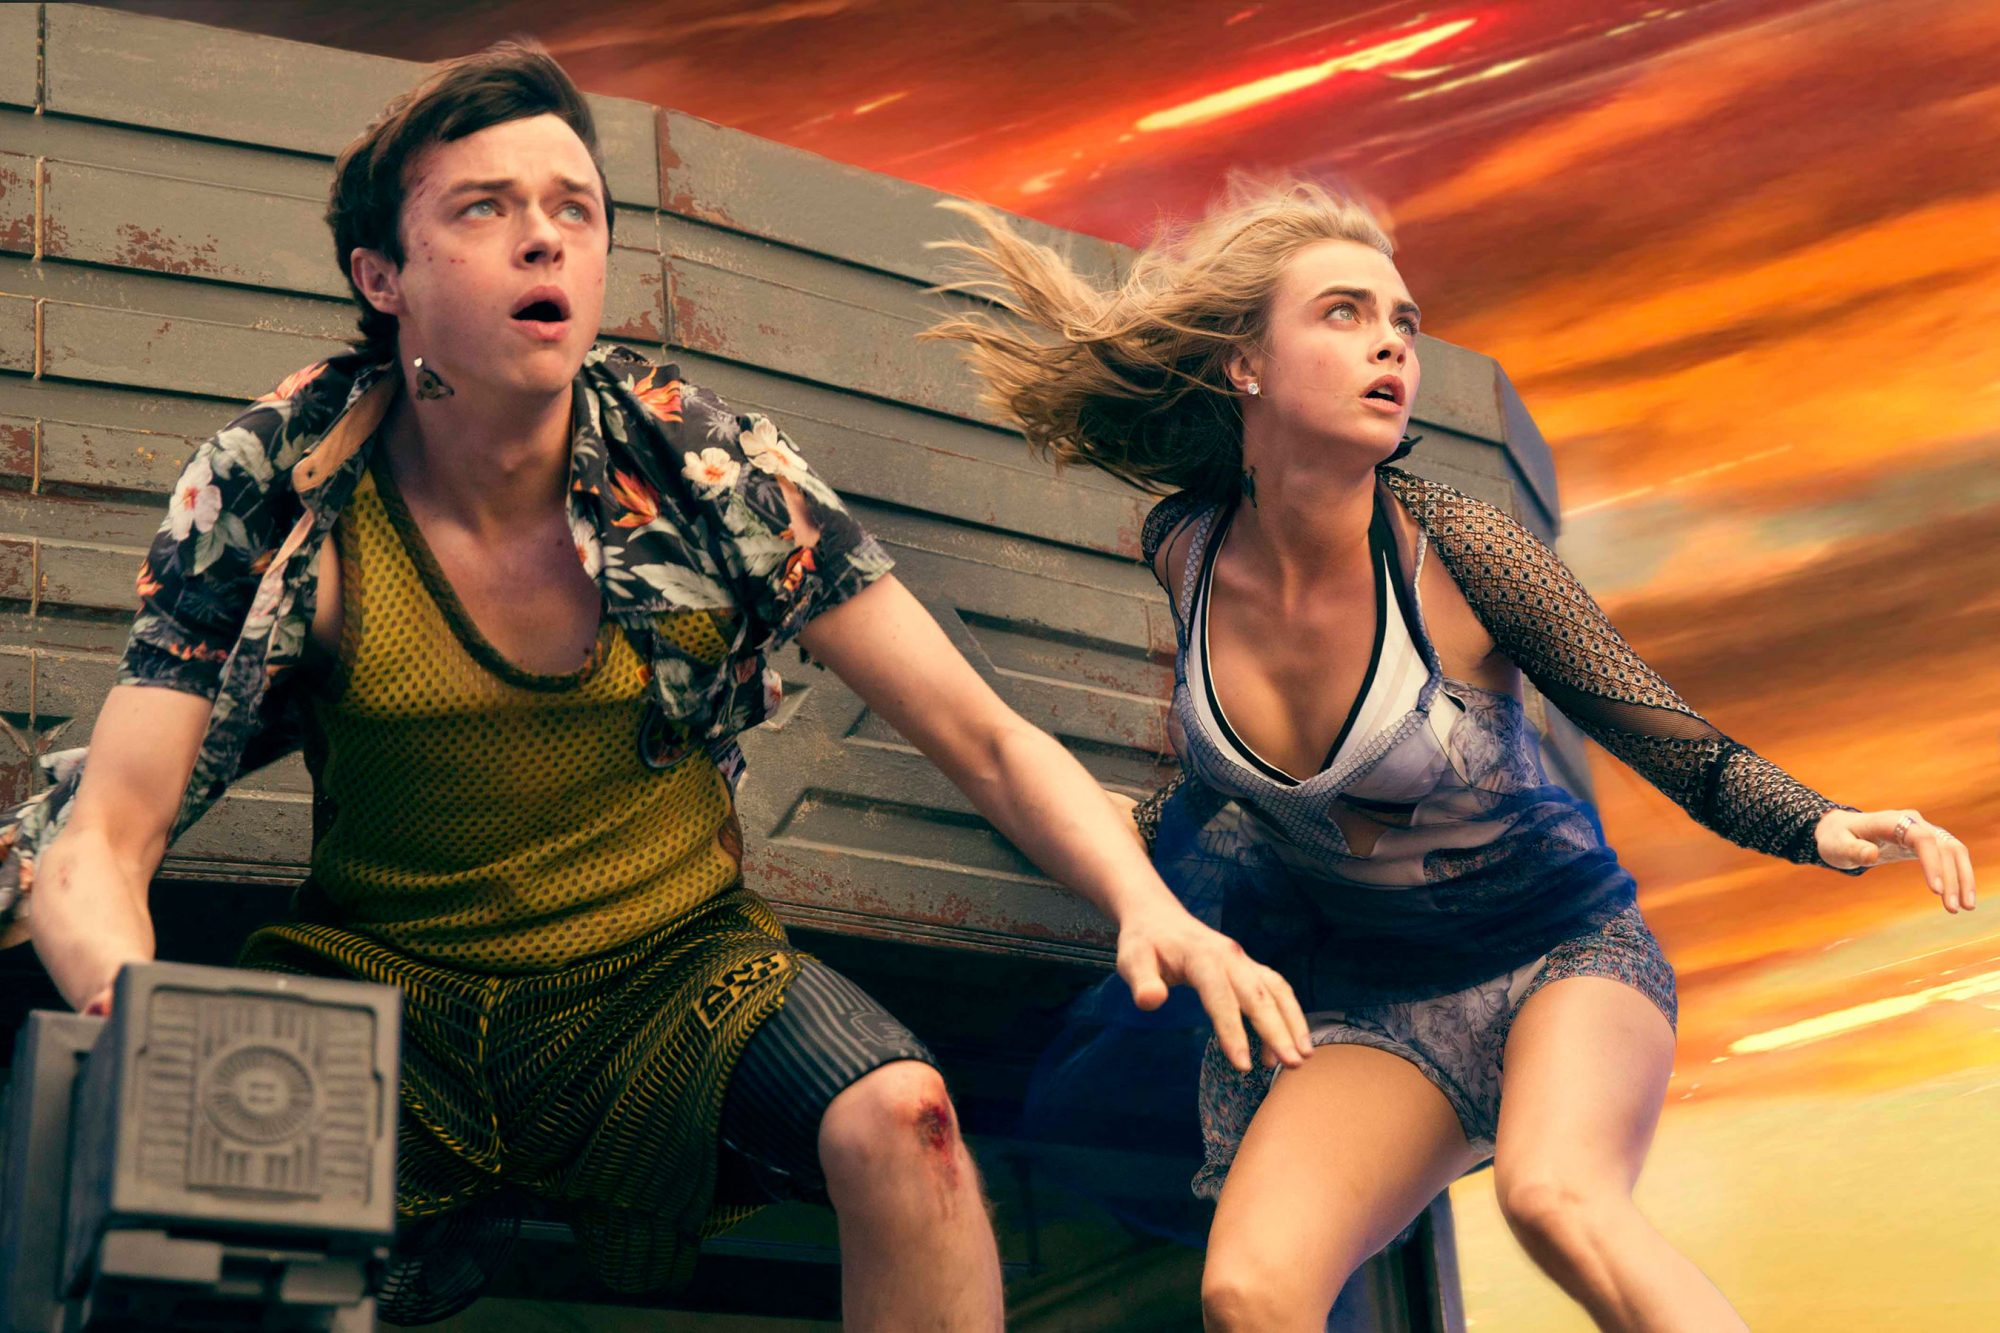 Dane DeHaan and Cara Delevigne (Valerian and the City of a Thousand Planets, out July 21)